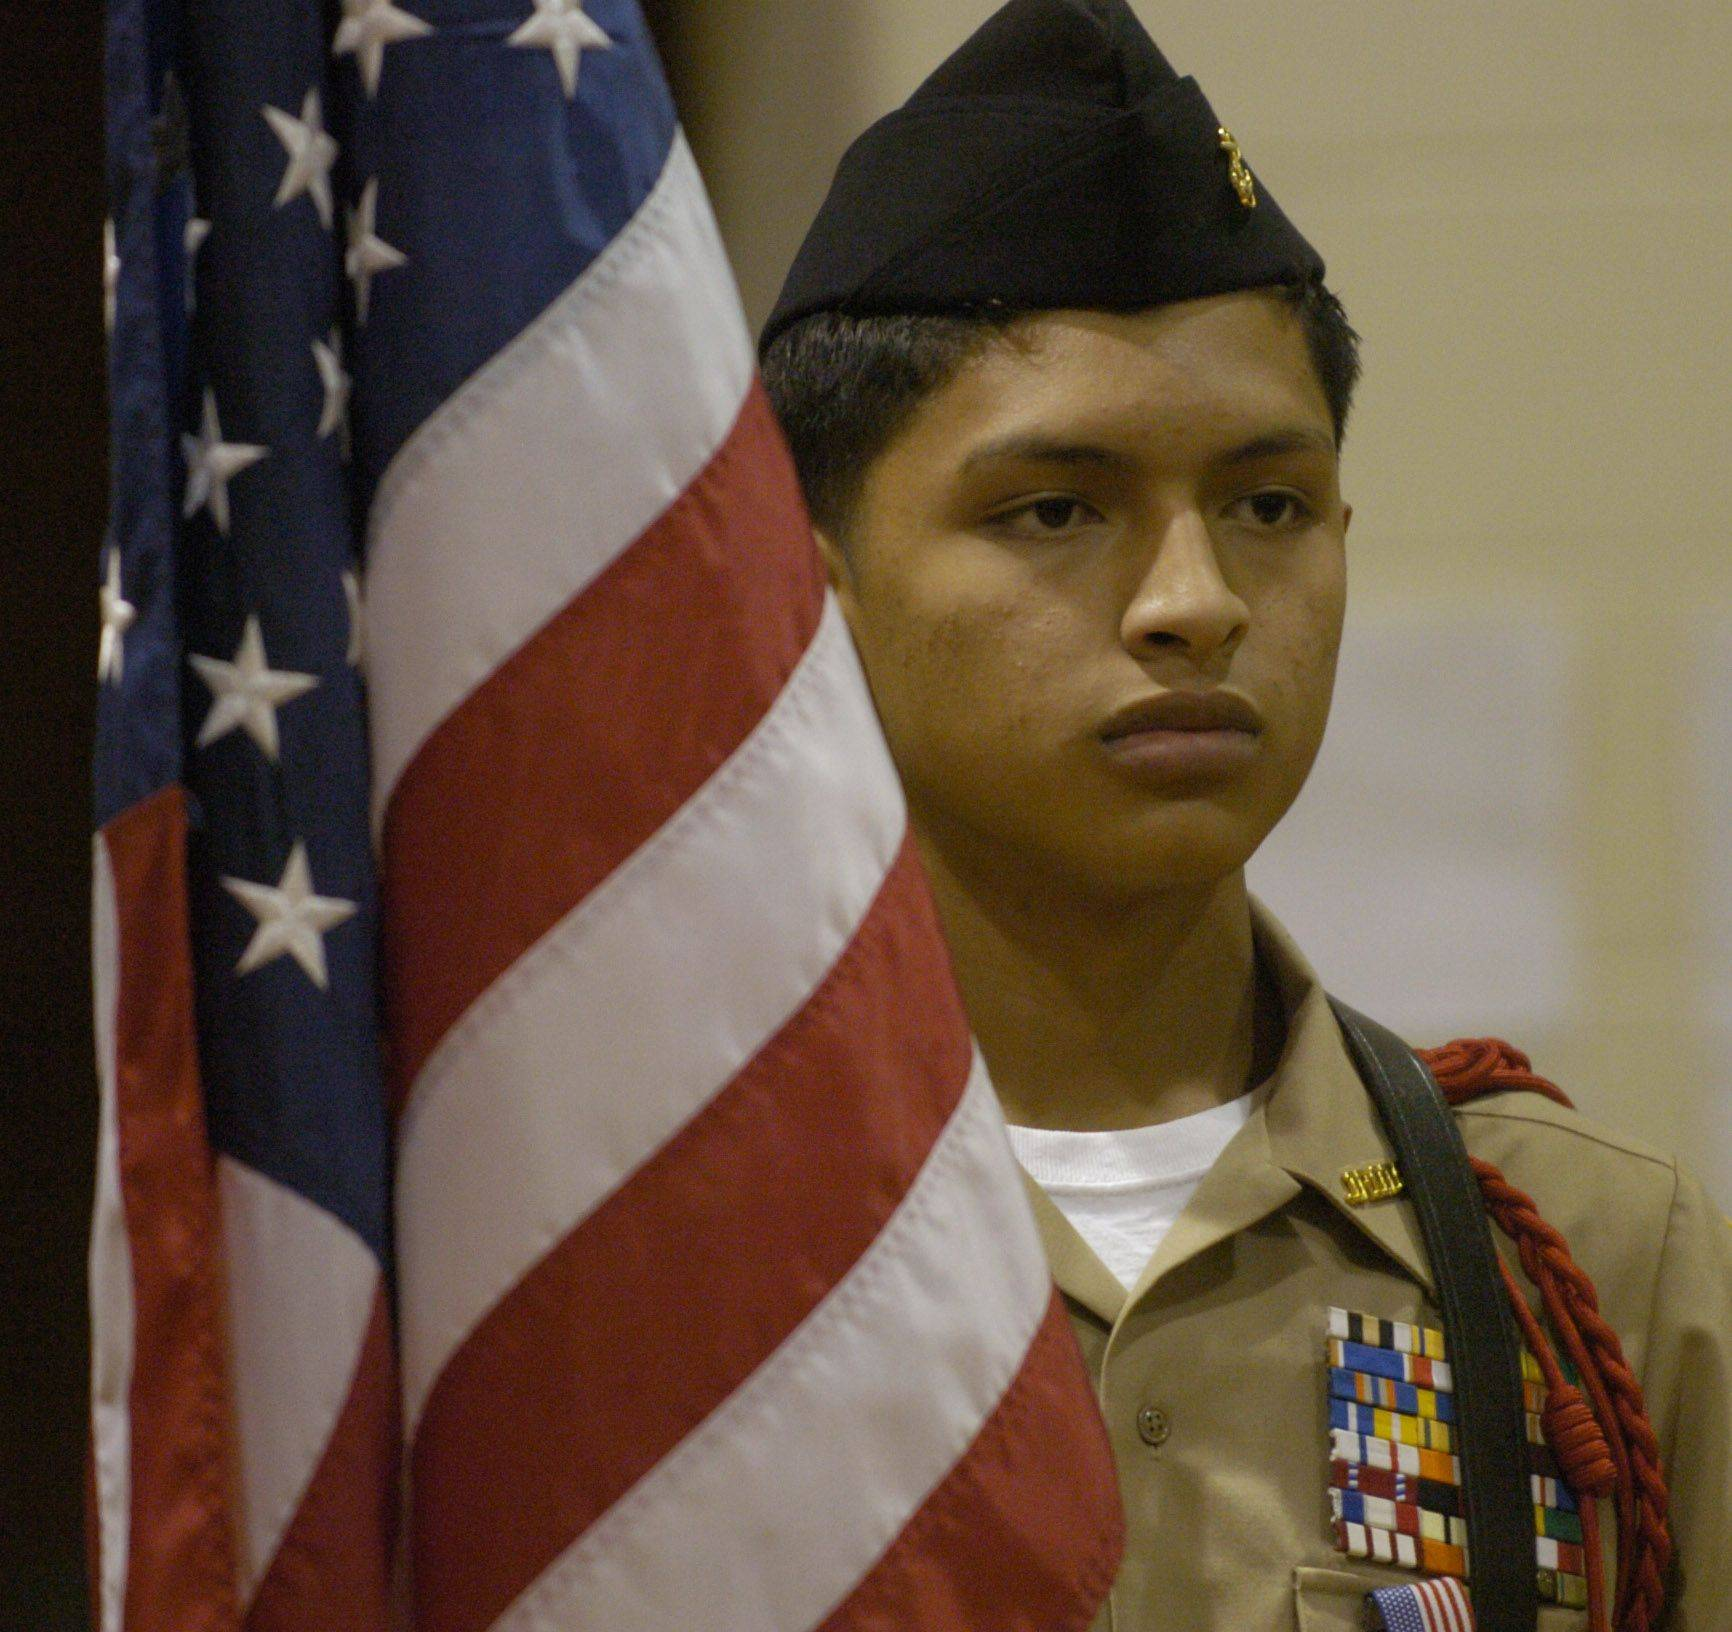 Sophomore George Alvarez of the Wheeling High School NJROTC color guard, stands at attention with the flag before a Veteran's Day event at MacArthur Middle School, Prospect Heights, Thursday.